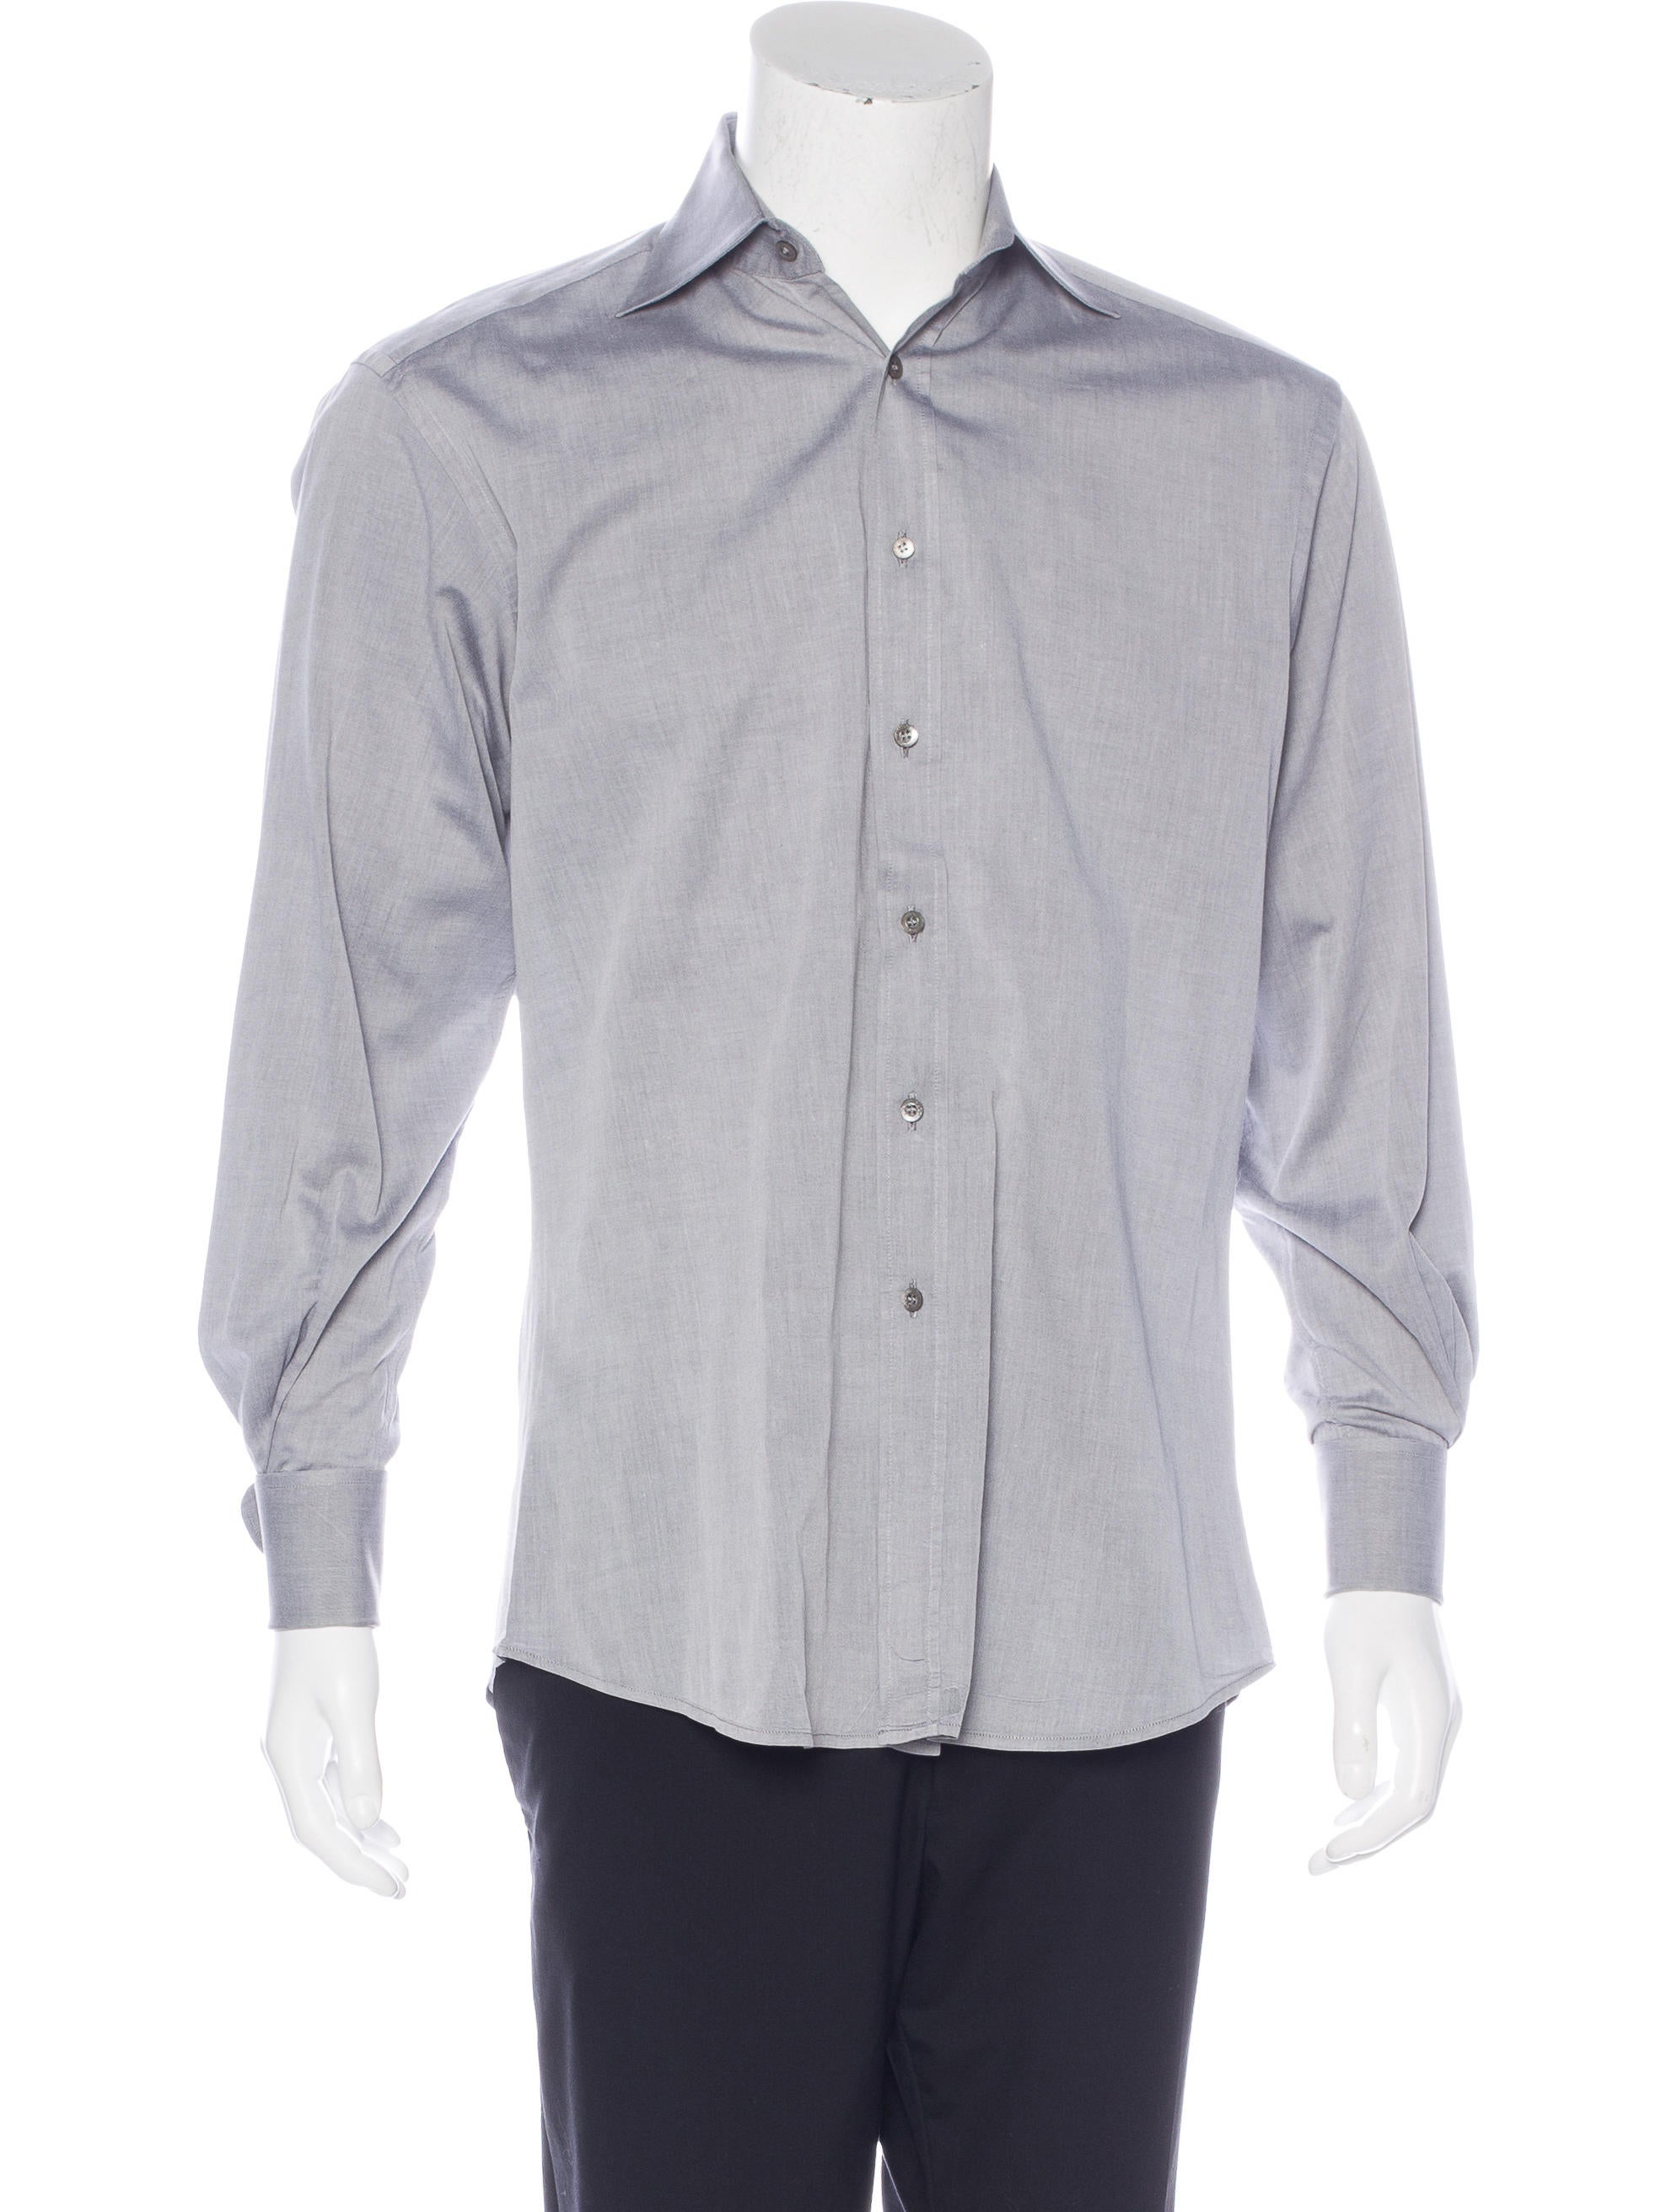 Gucci French Cuff Dress Shirt Clothing Guc153576 The